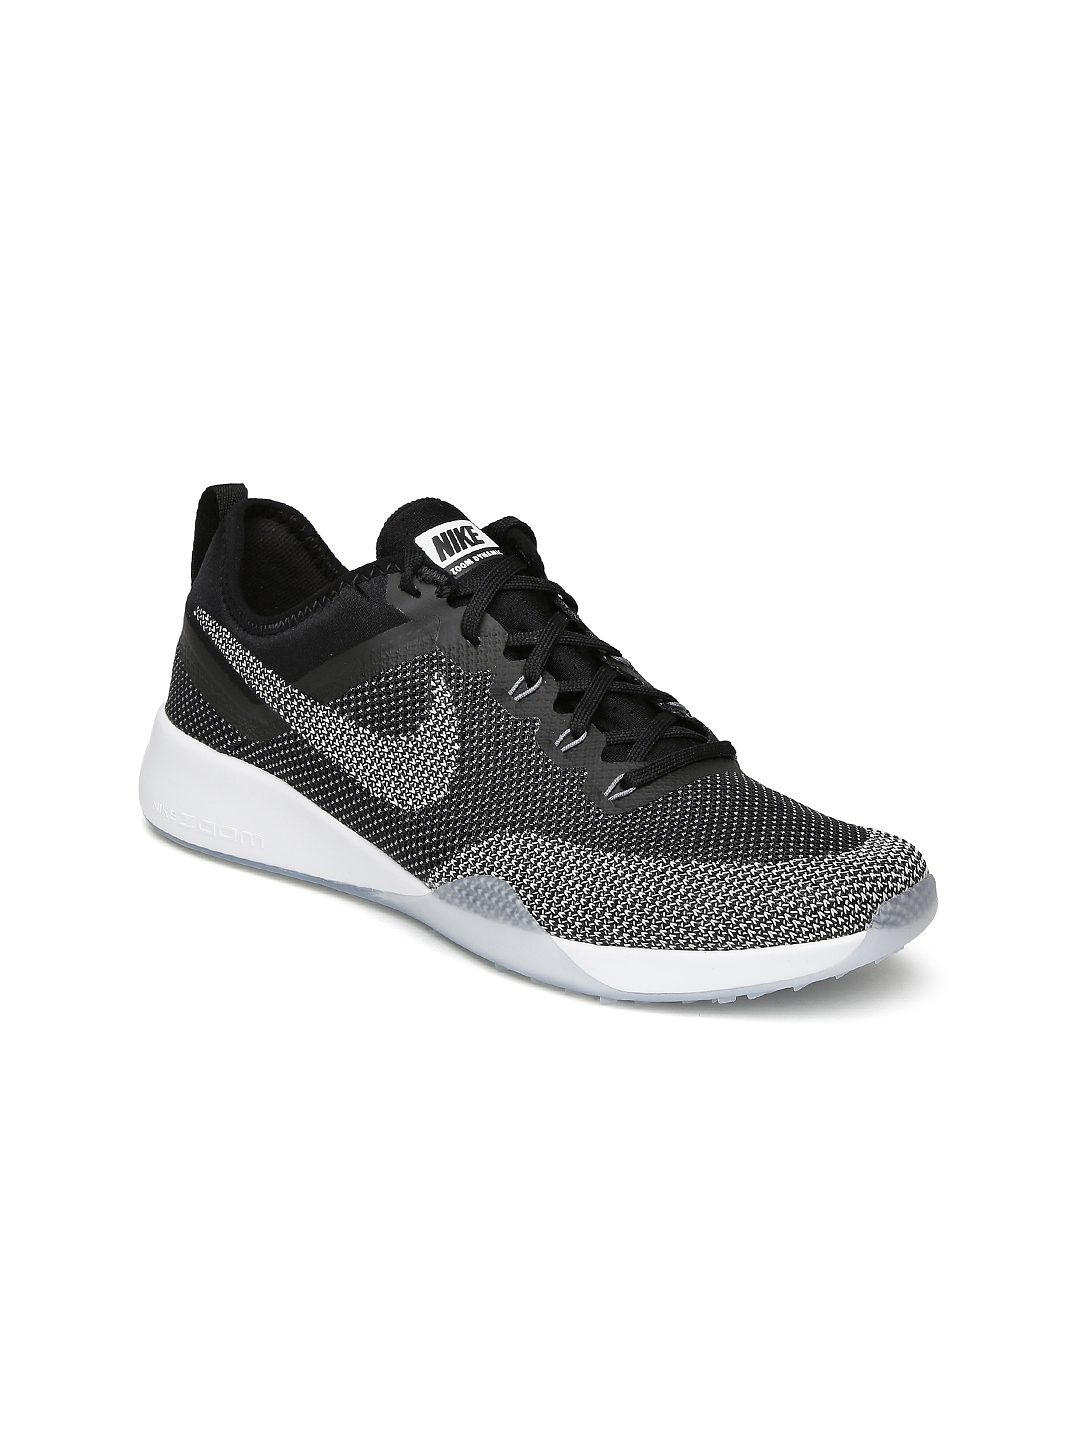 cheap for discount 883cf 57b45 7ccd341c-119d-4ec9-981e-9ec648bd02821548918636153-Nike-Women-Black-NIKE -AIR-ZOOM-TR-DYNAMIC-Training-Shoes-622-1.jpg